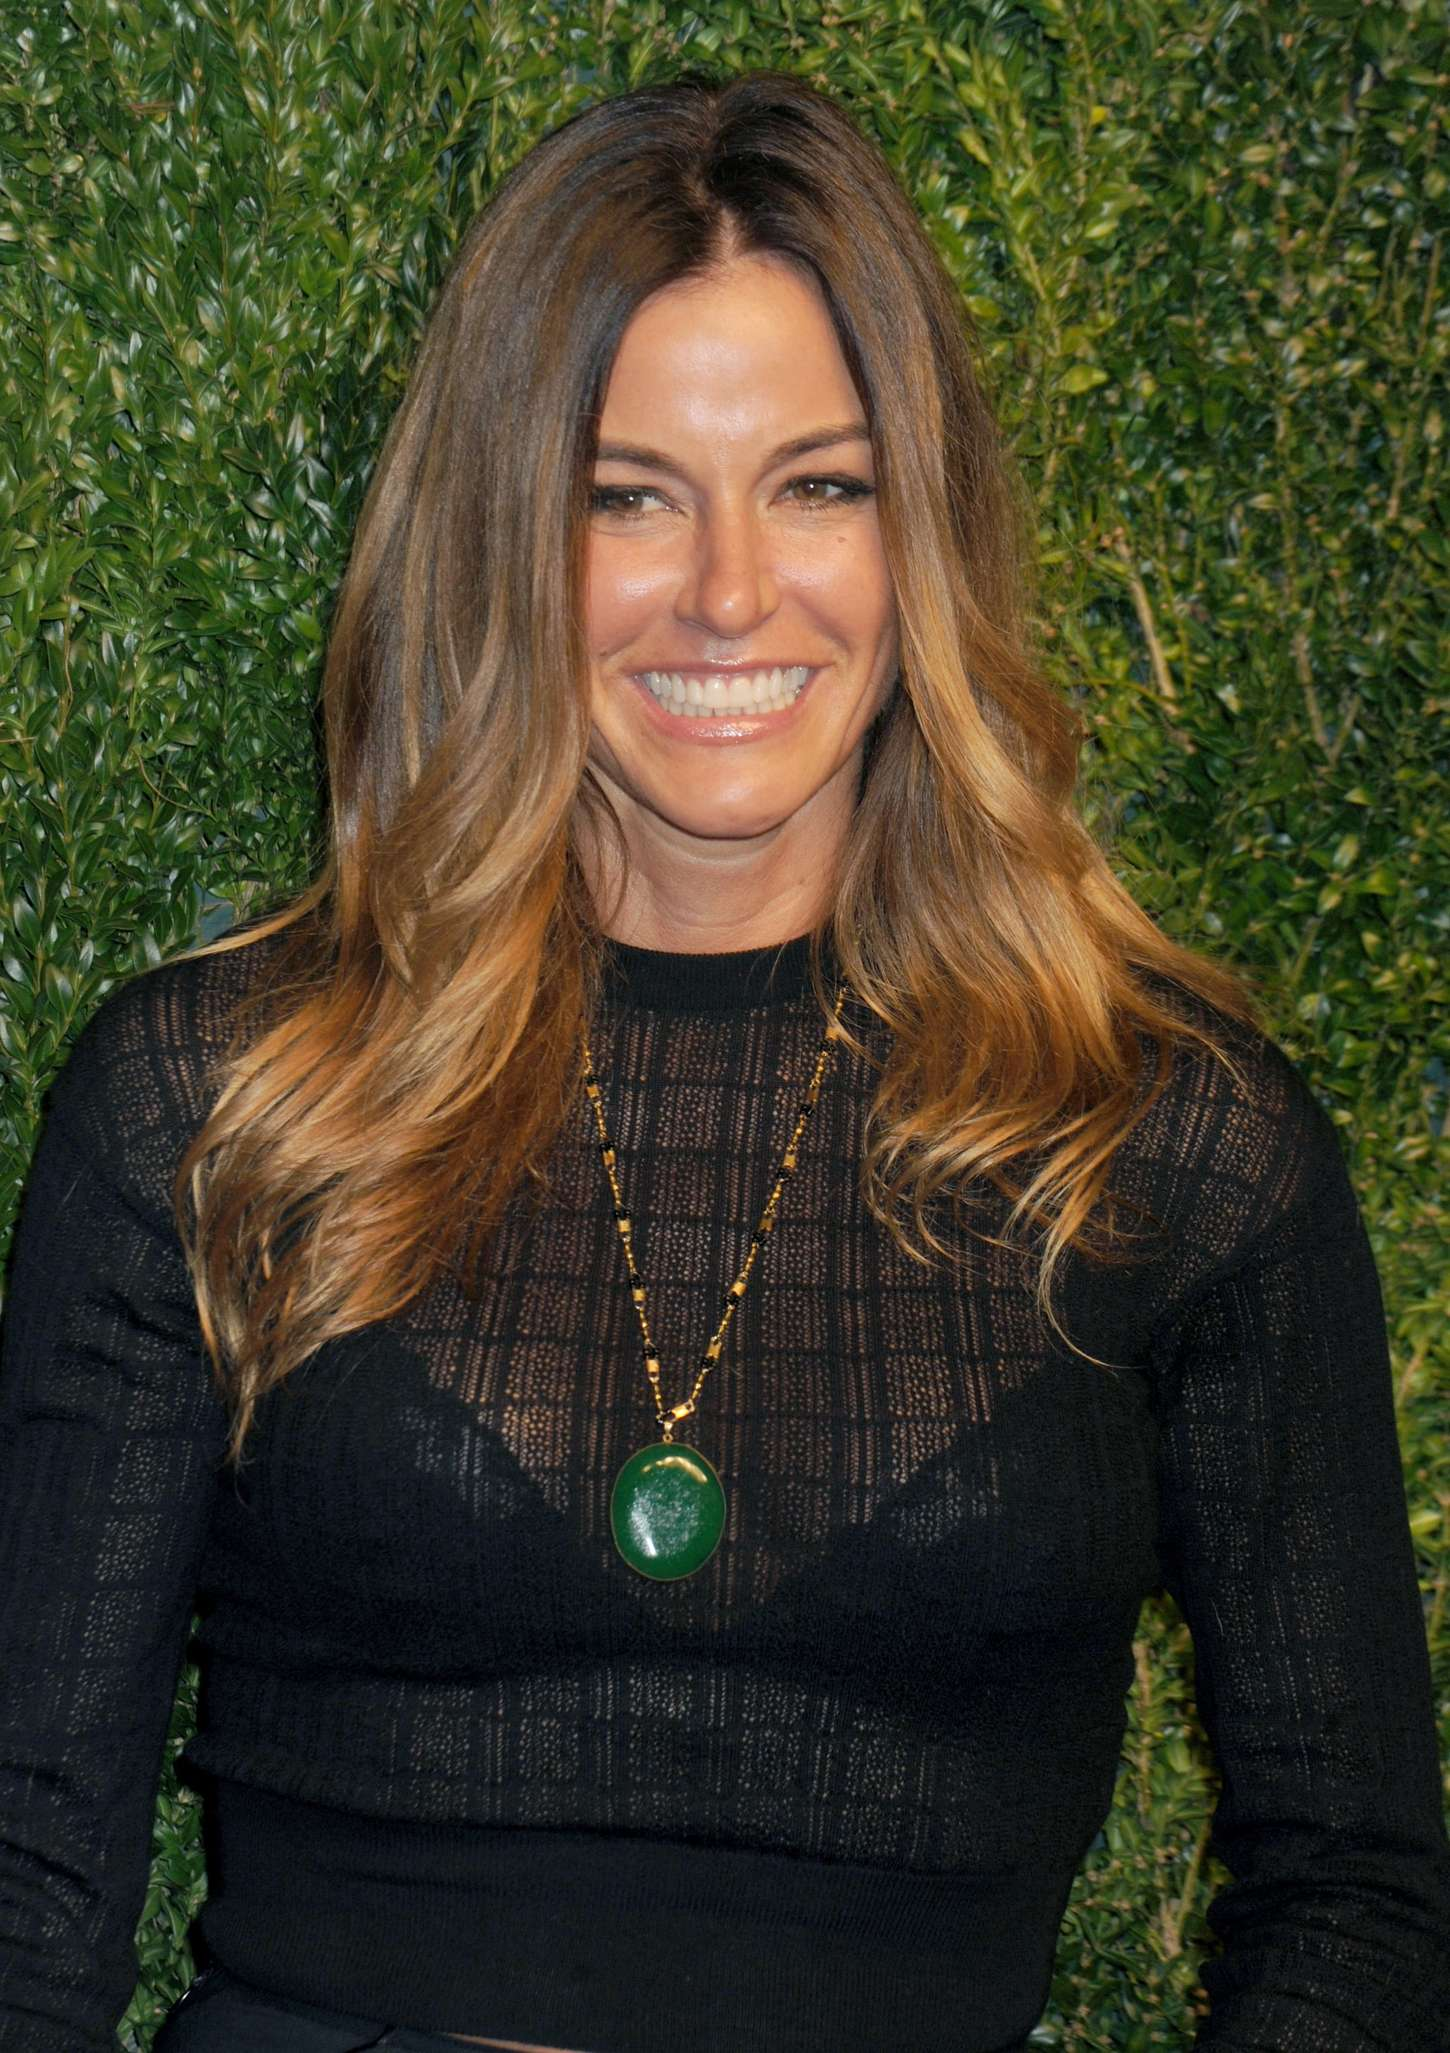 Kelly Bensimon Gods Love We Deliver Golden Heart Awards in New York